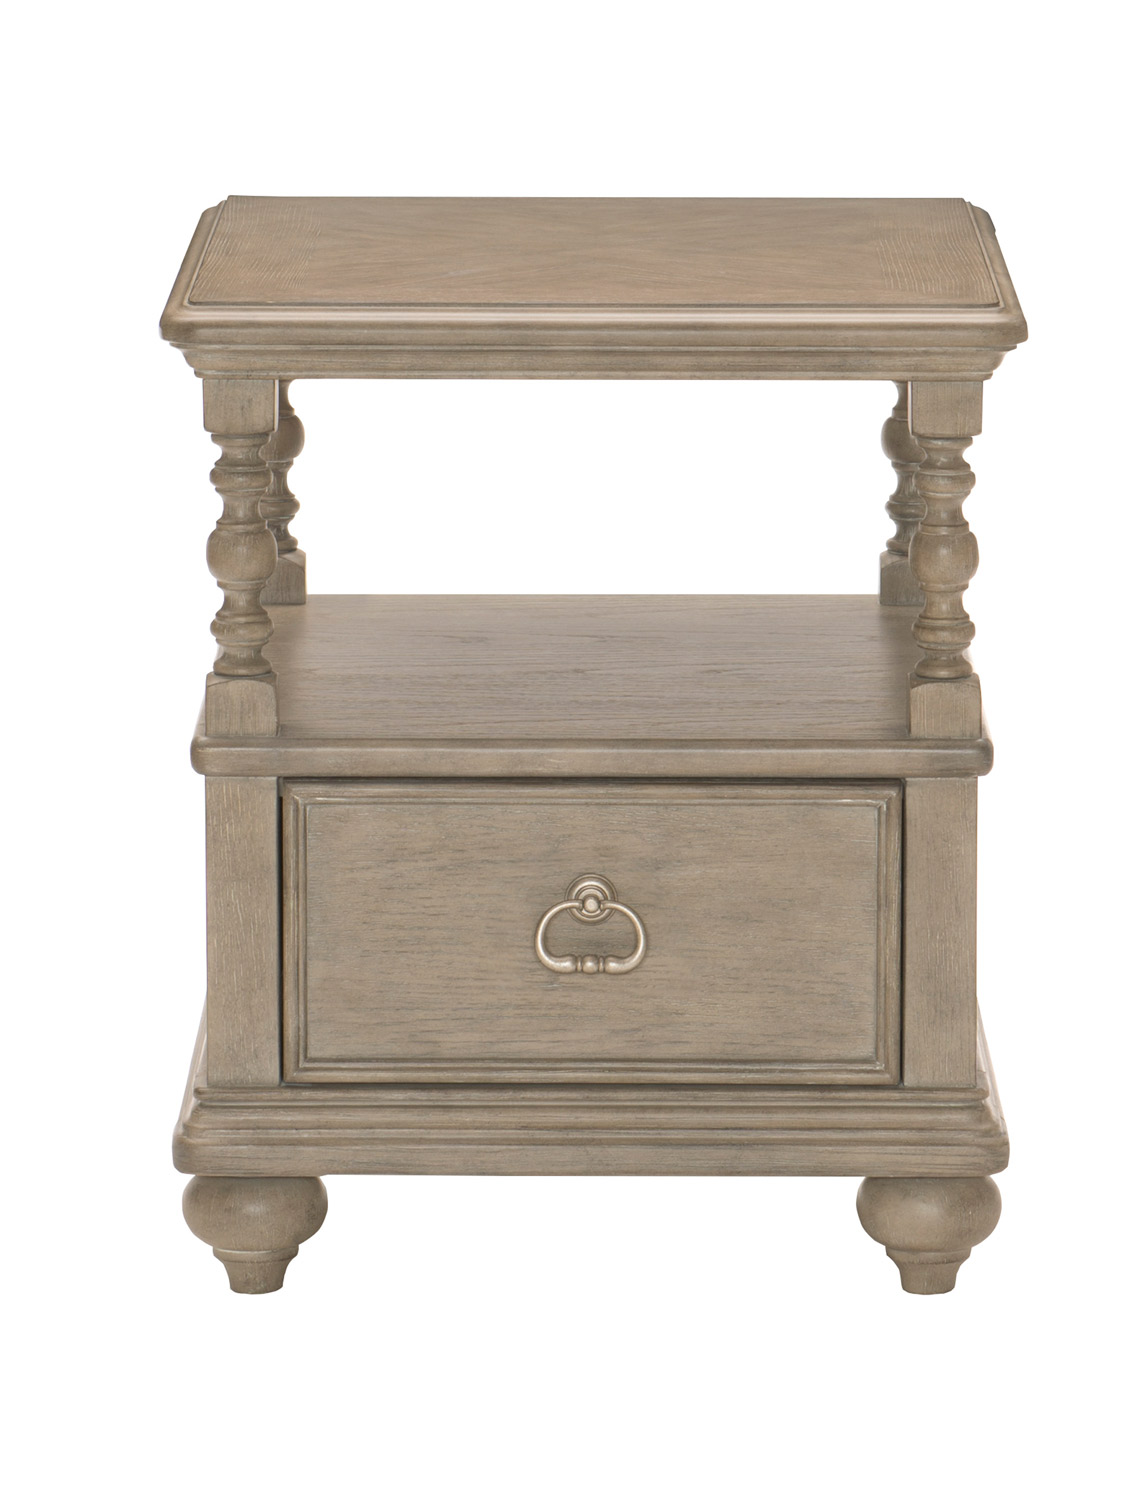 Homelegance Grayling Down End Table with Functional Drawer - Driftwood Gray